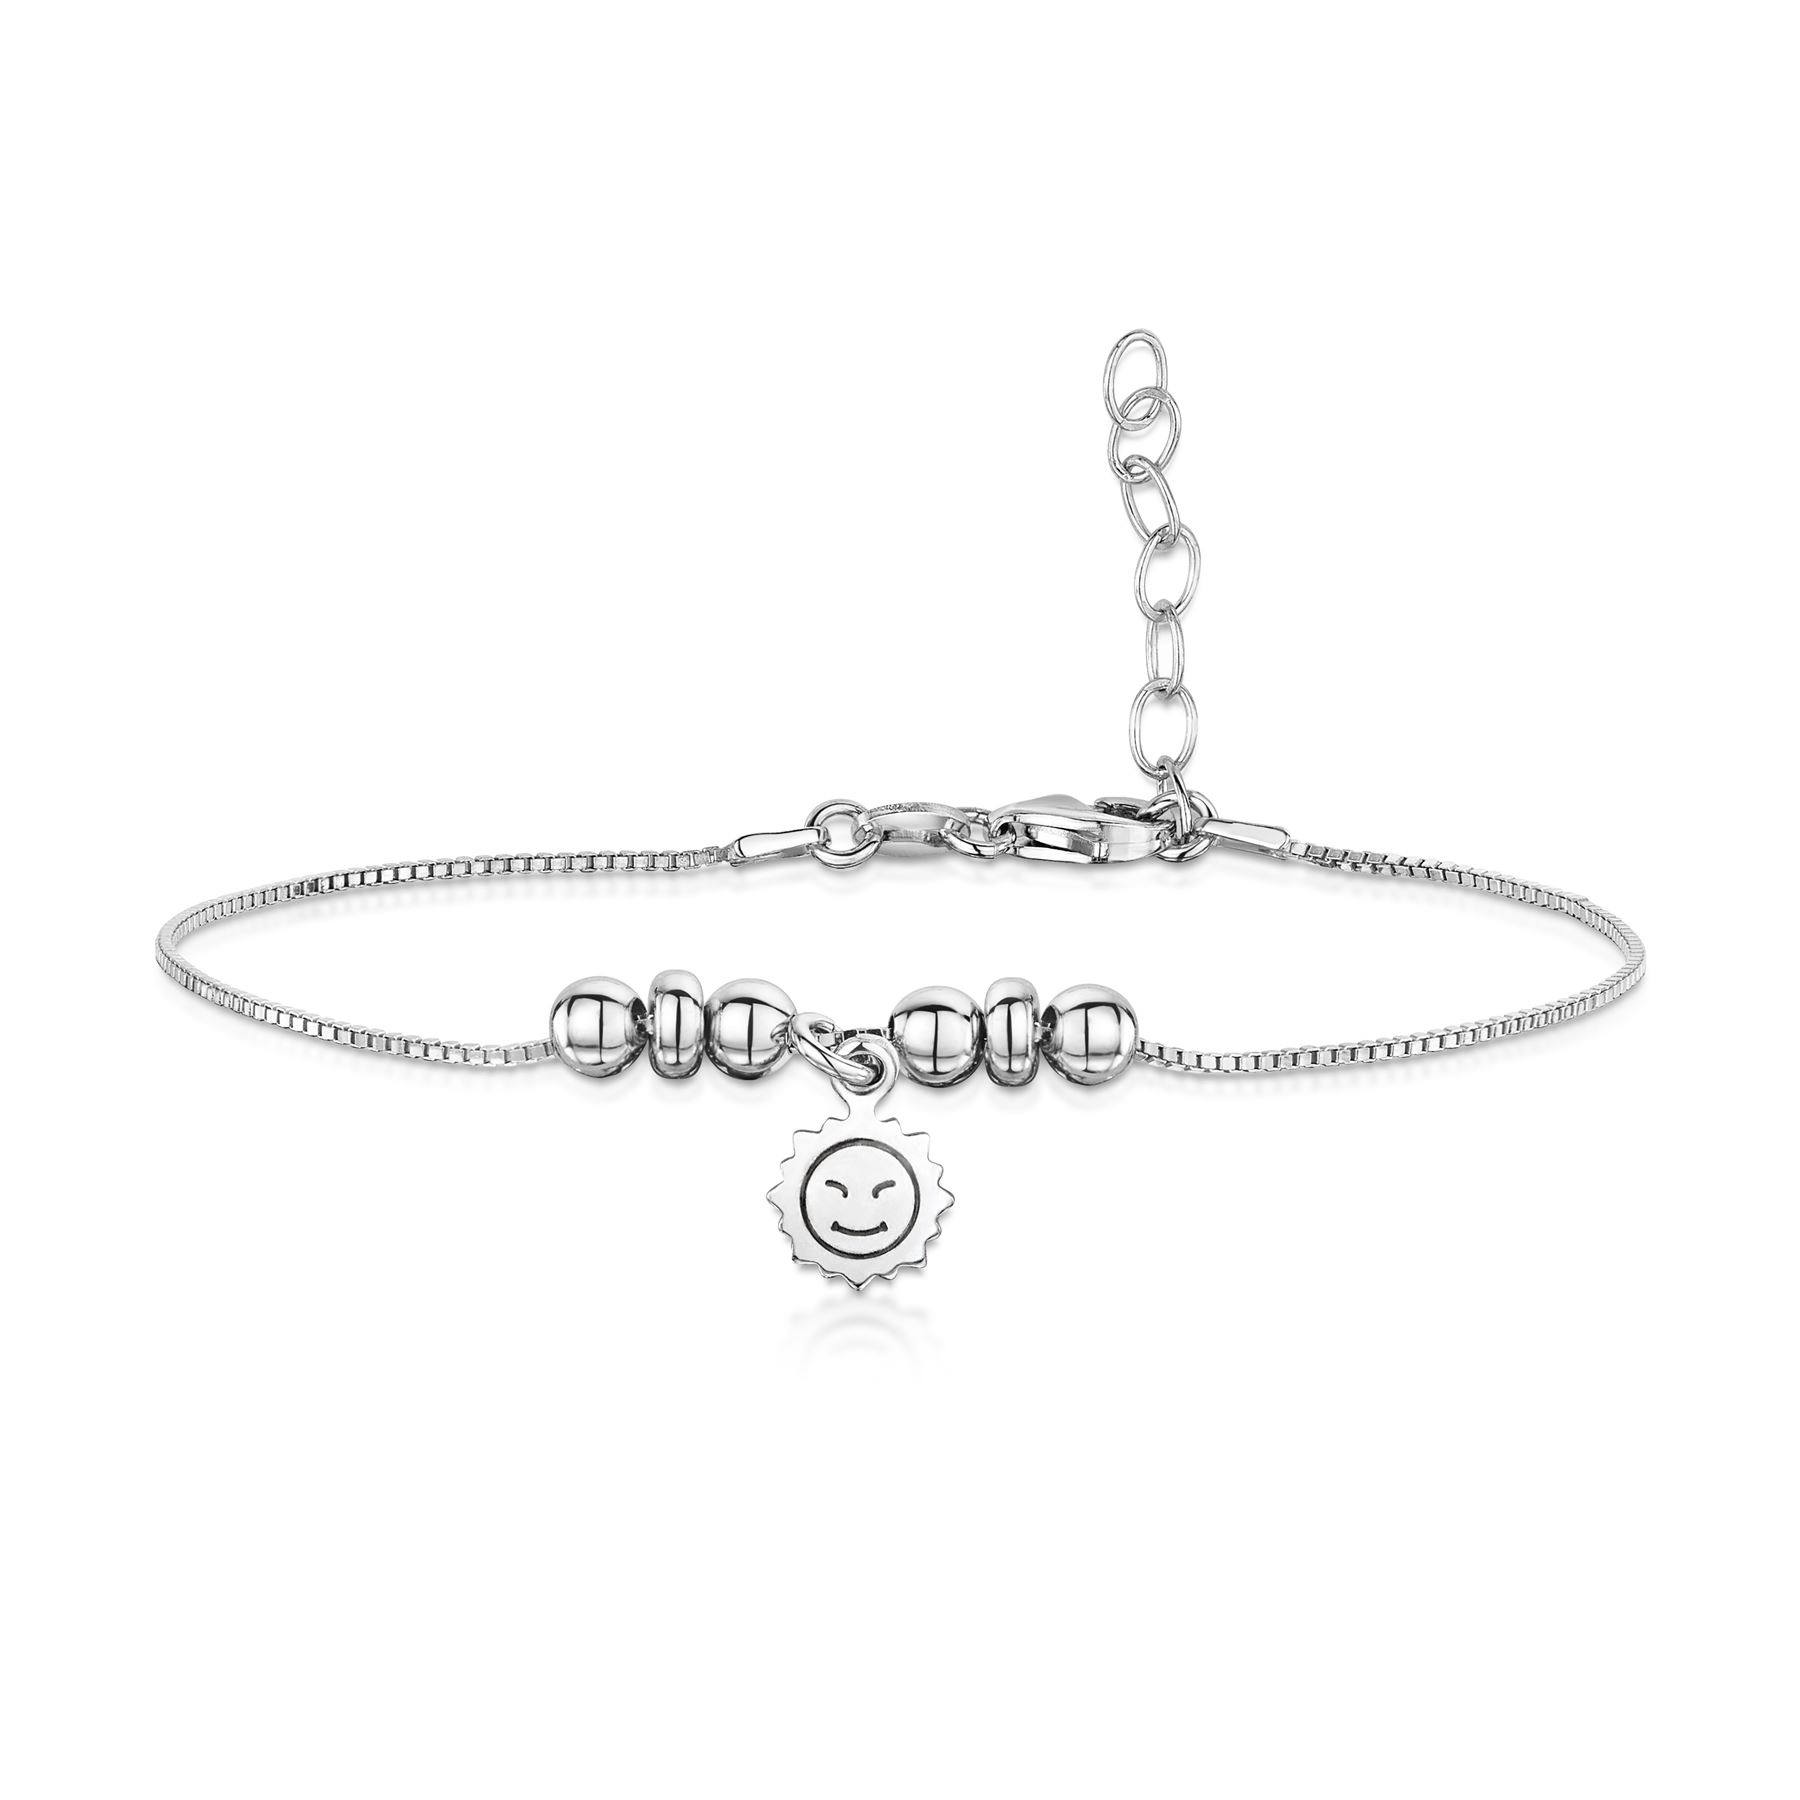 Amberta-Jewelry-925-Sterling-Silver-Adjustable-Anklet-for-Women-Made-in-Italy miniature 3